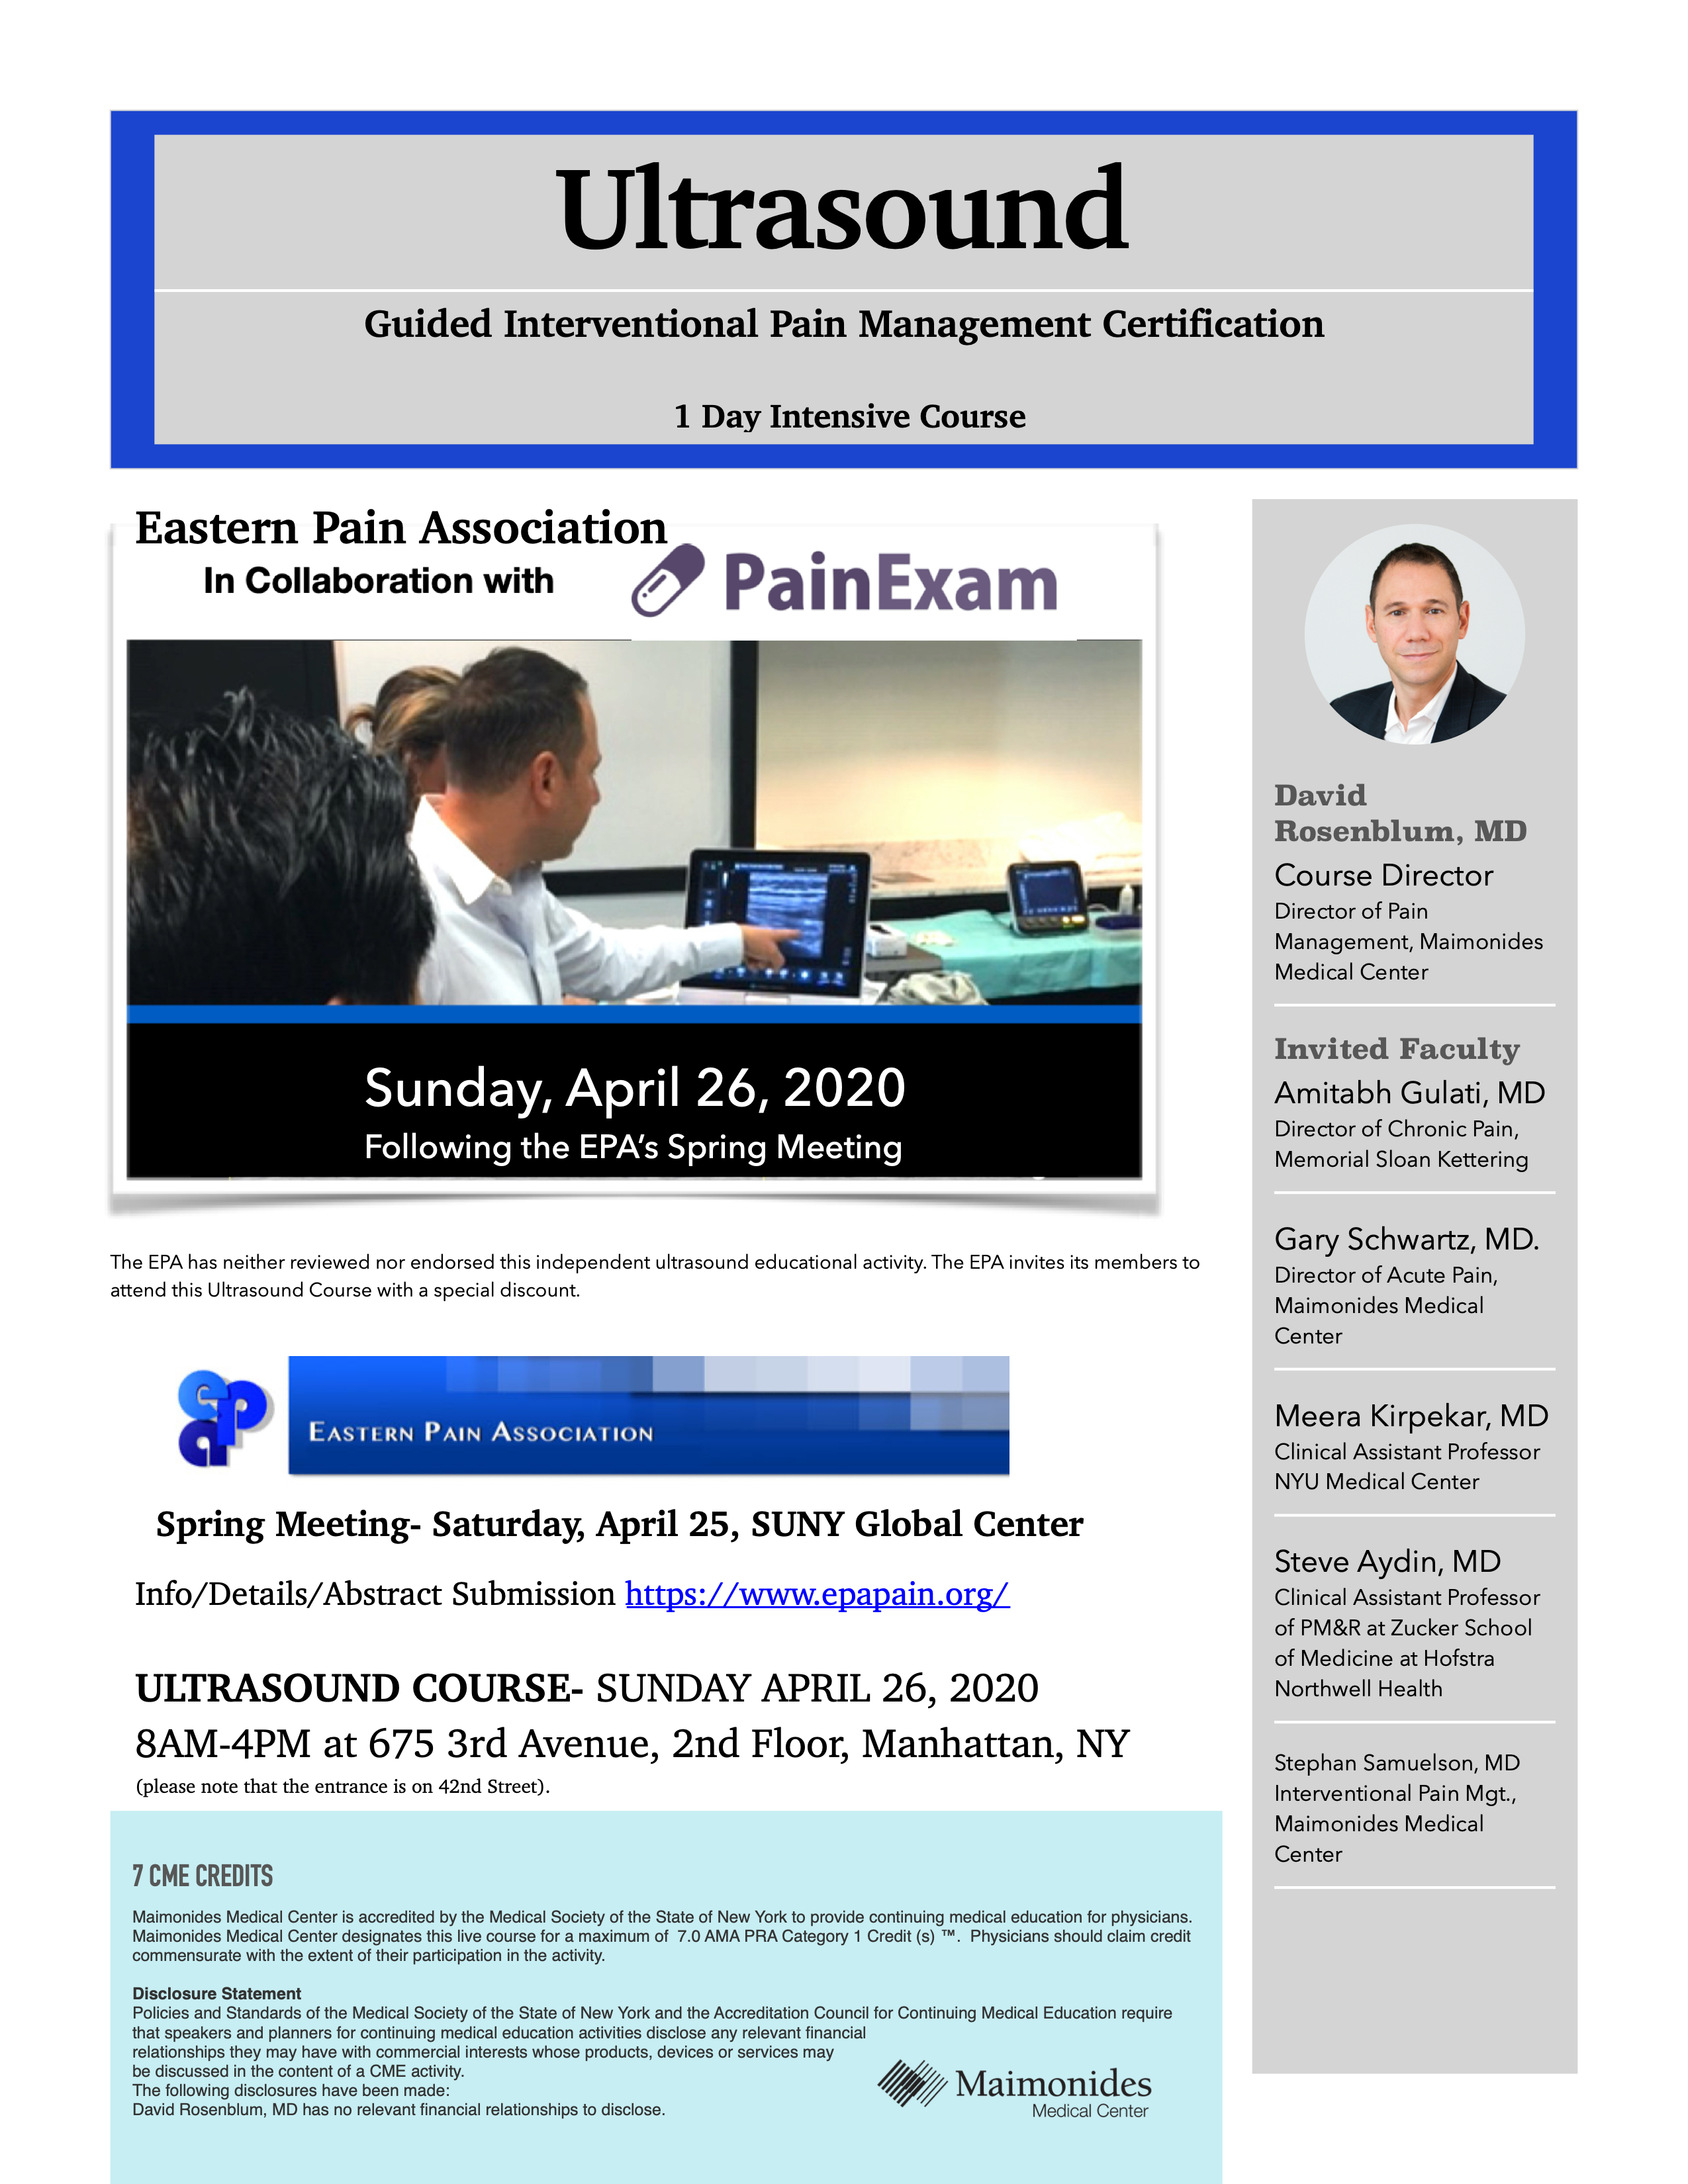 EPA PainExam Ultrasound Course April 26, 2020